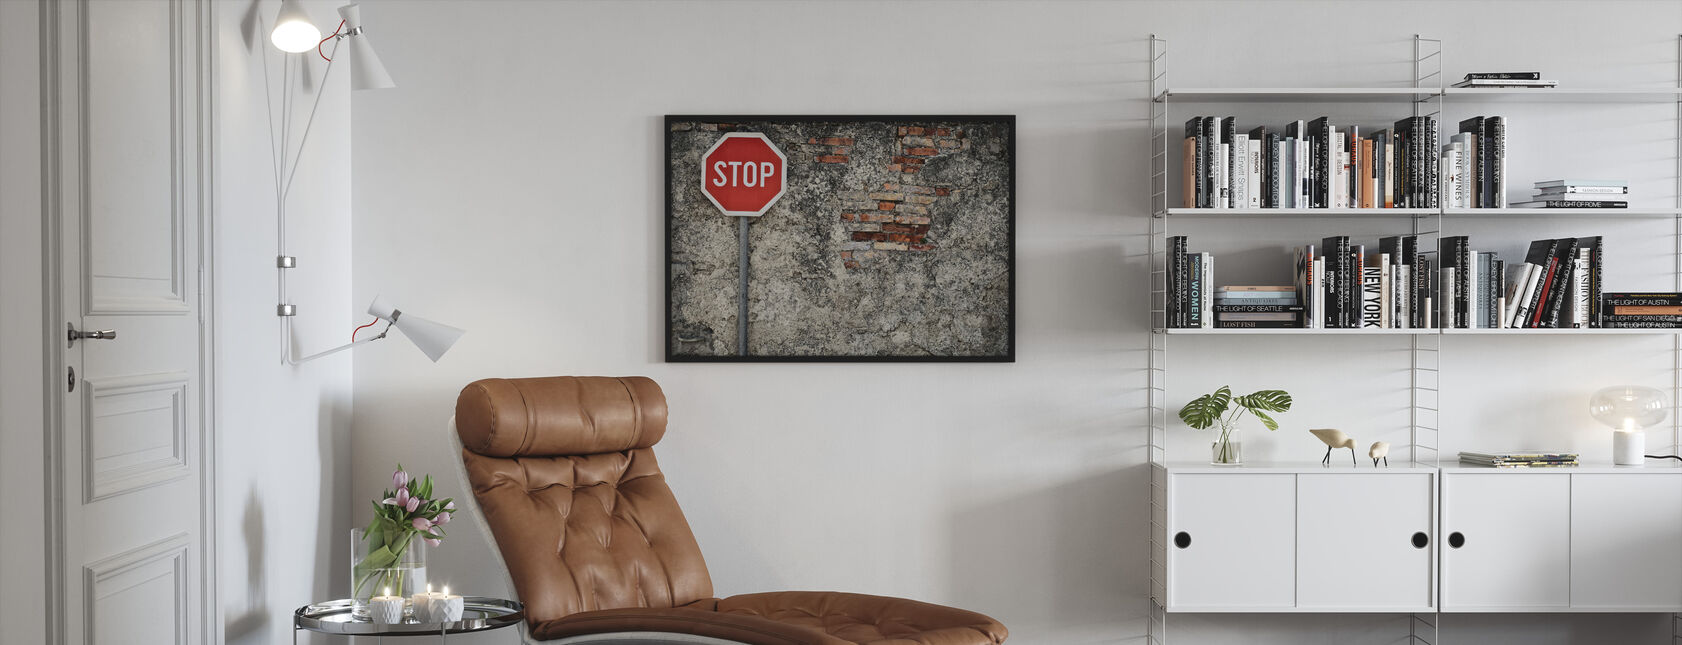 Stop Sign Against Grungy Wall - Framed print - Living Room